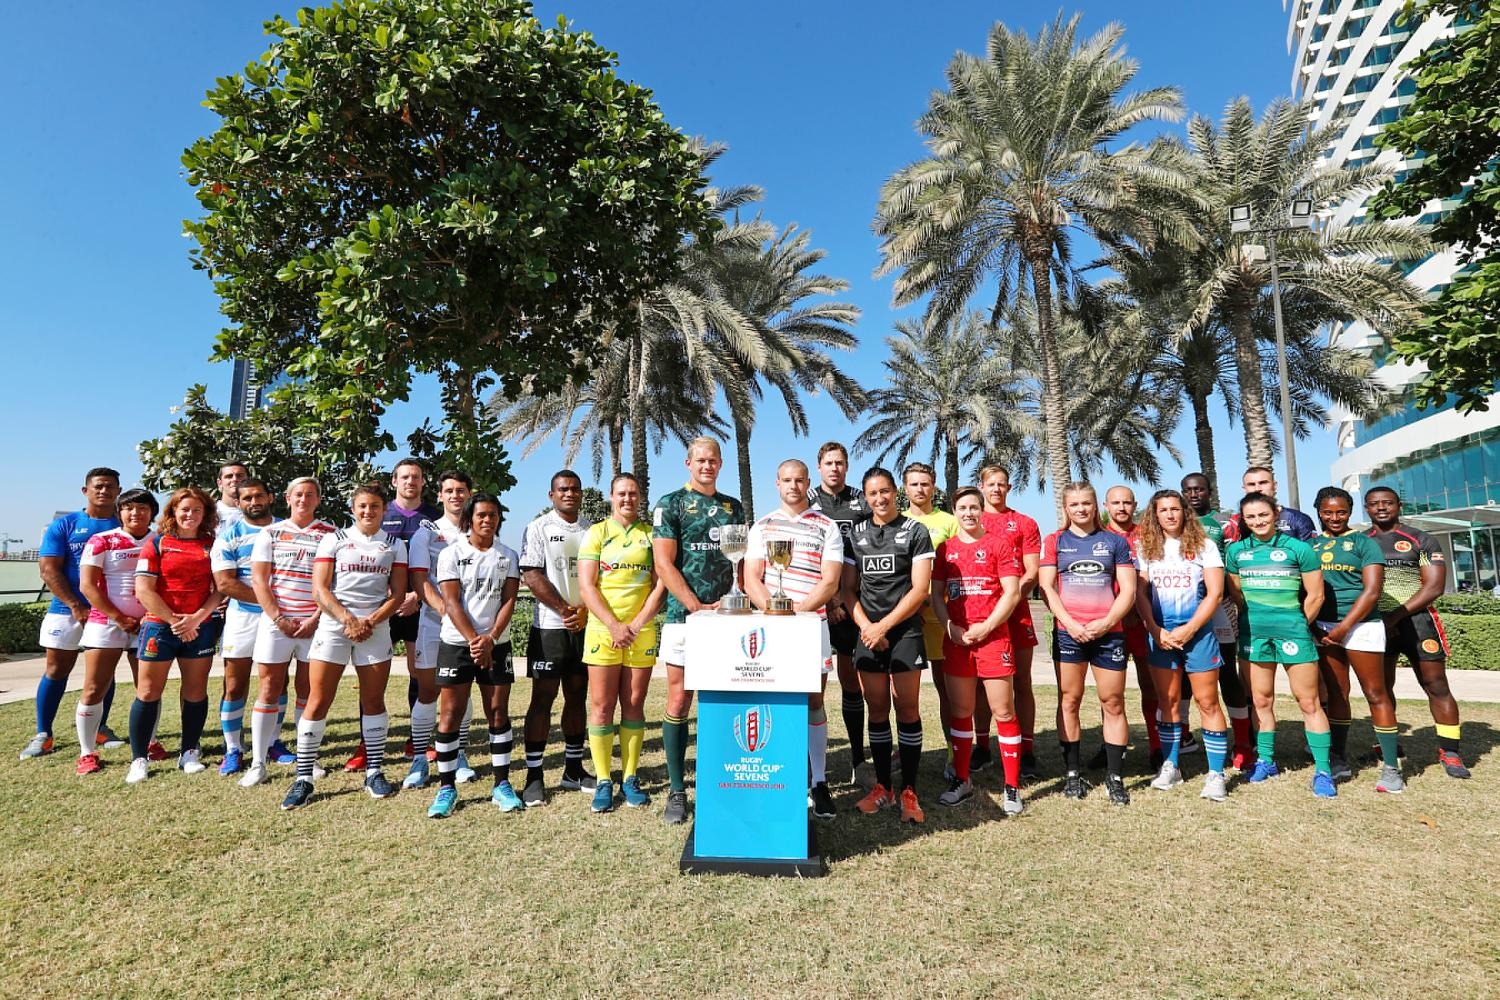 Rugby World Cup Sevens 2018 - Women's and Men's qualified teams in Dubai